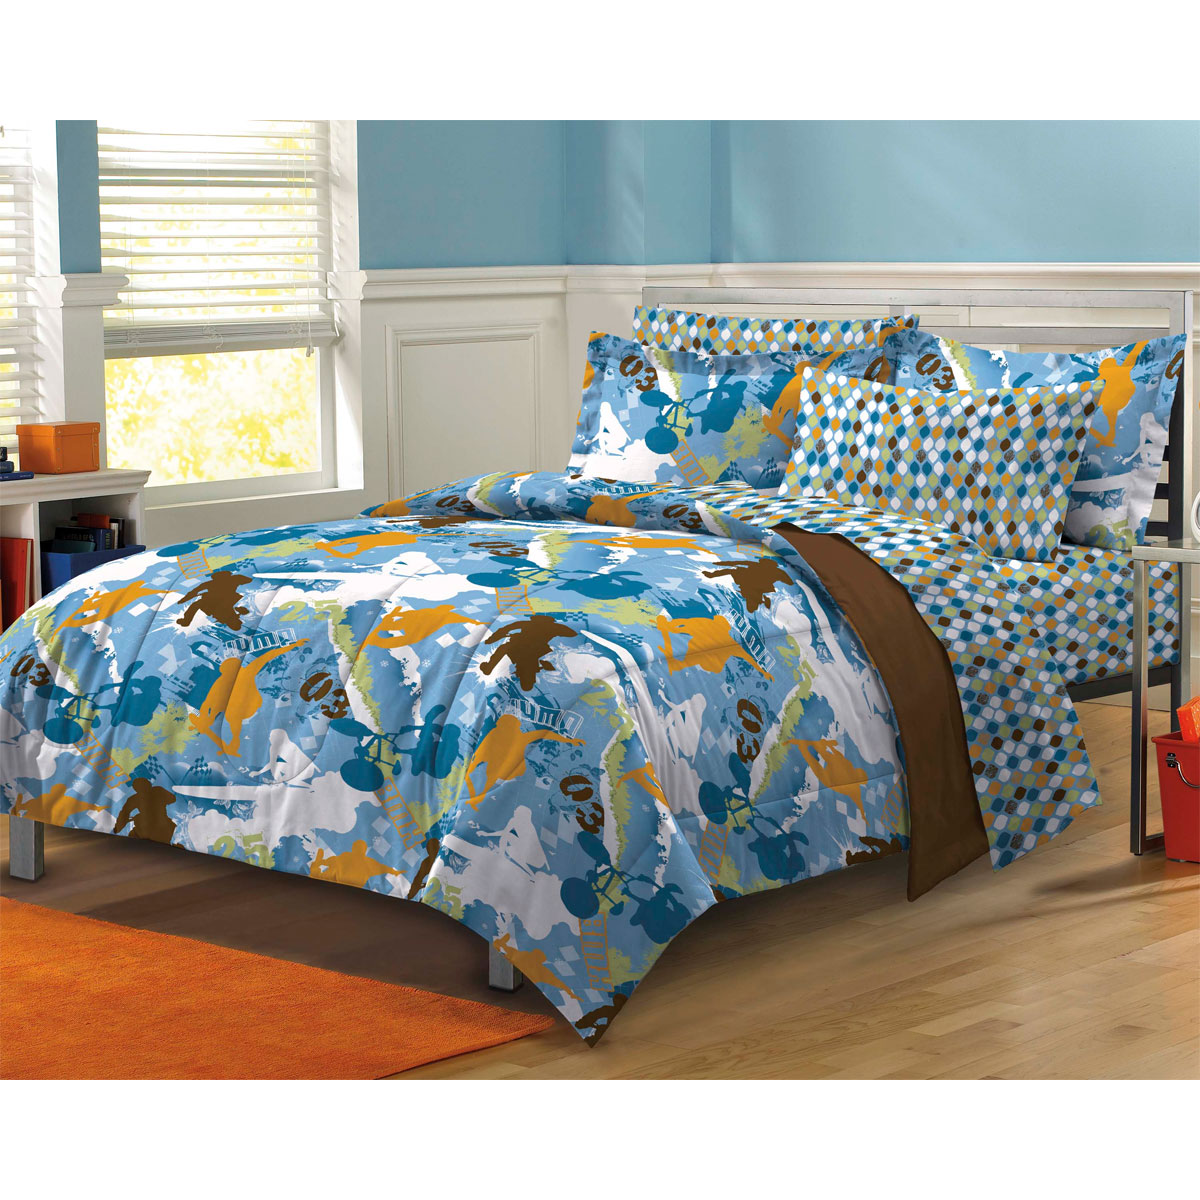 My Room Extreme Sports Complete Bed In A Bag Bedding Set   Walmart.com